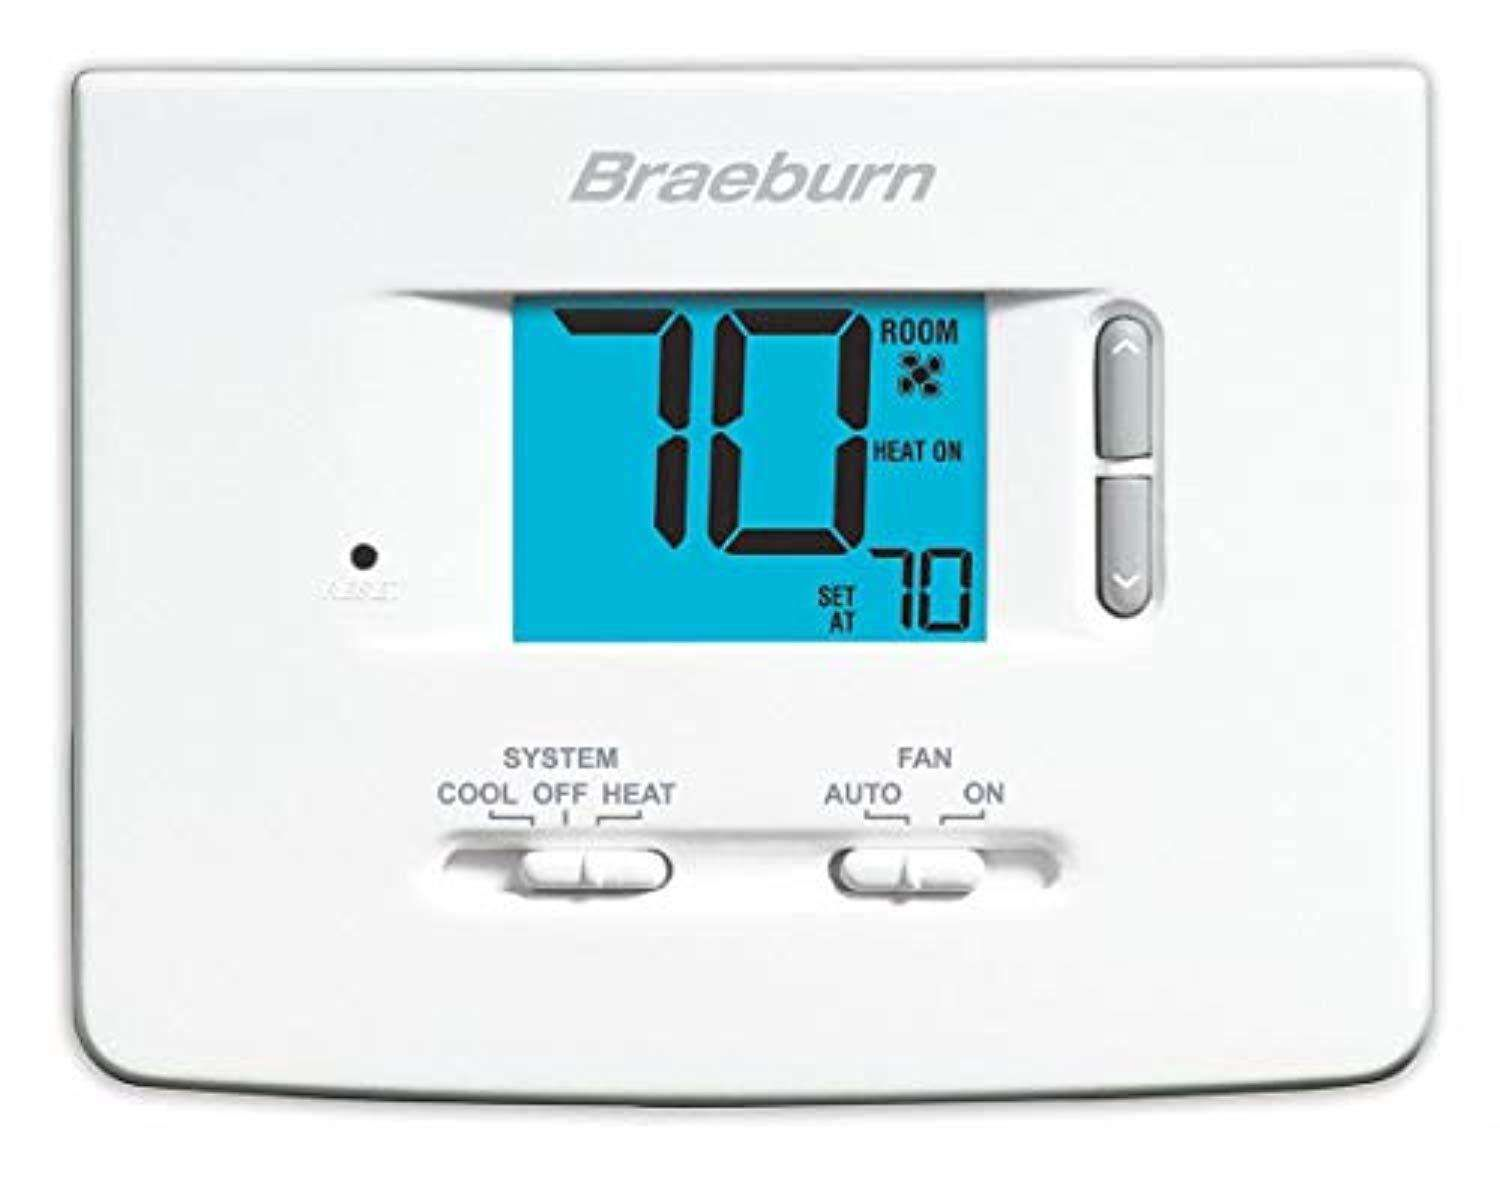 [shortdesc] Application Single Stage (Heat/Cool) Stages 1 Heat/1 Cool User Interface Push Button Programmability Non-Programmable Power Method Hardwired/Battery Voltage 24v [/shortdesc] Braeburn economical 1020NC thermostat is a simple single-stage dual-powered thermostat that is easy to see and set. Features: Large 2 sq. In. Display with bright blue backlight Adjustable temperature limits, Hardwire or battery-powered Permanent memory retains settings, compressor short cycle protection Separate